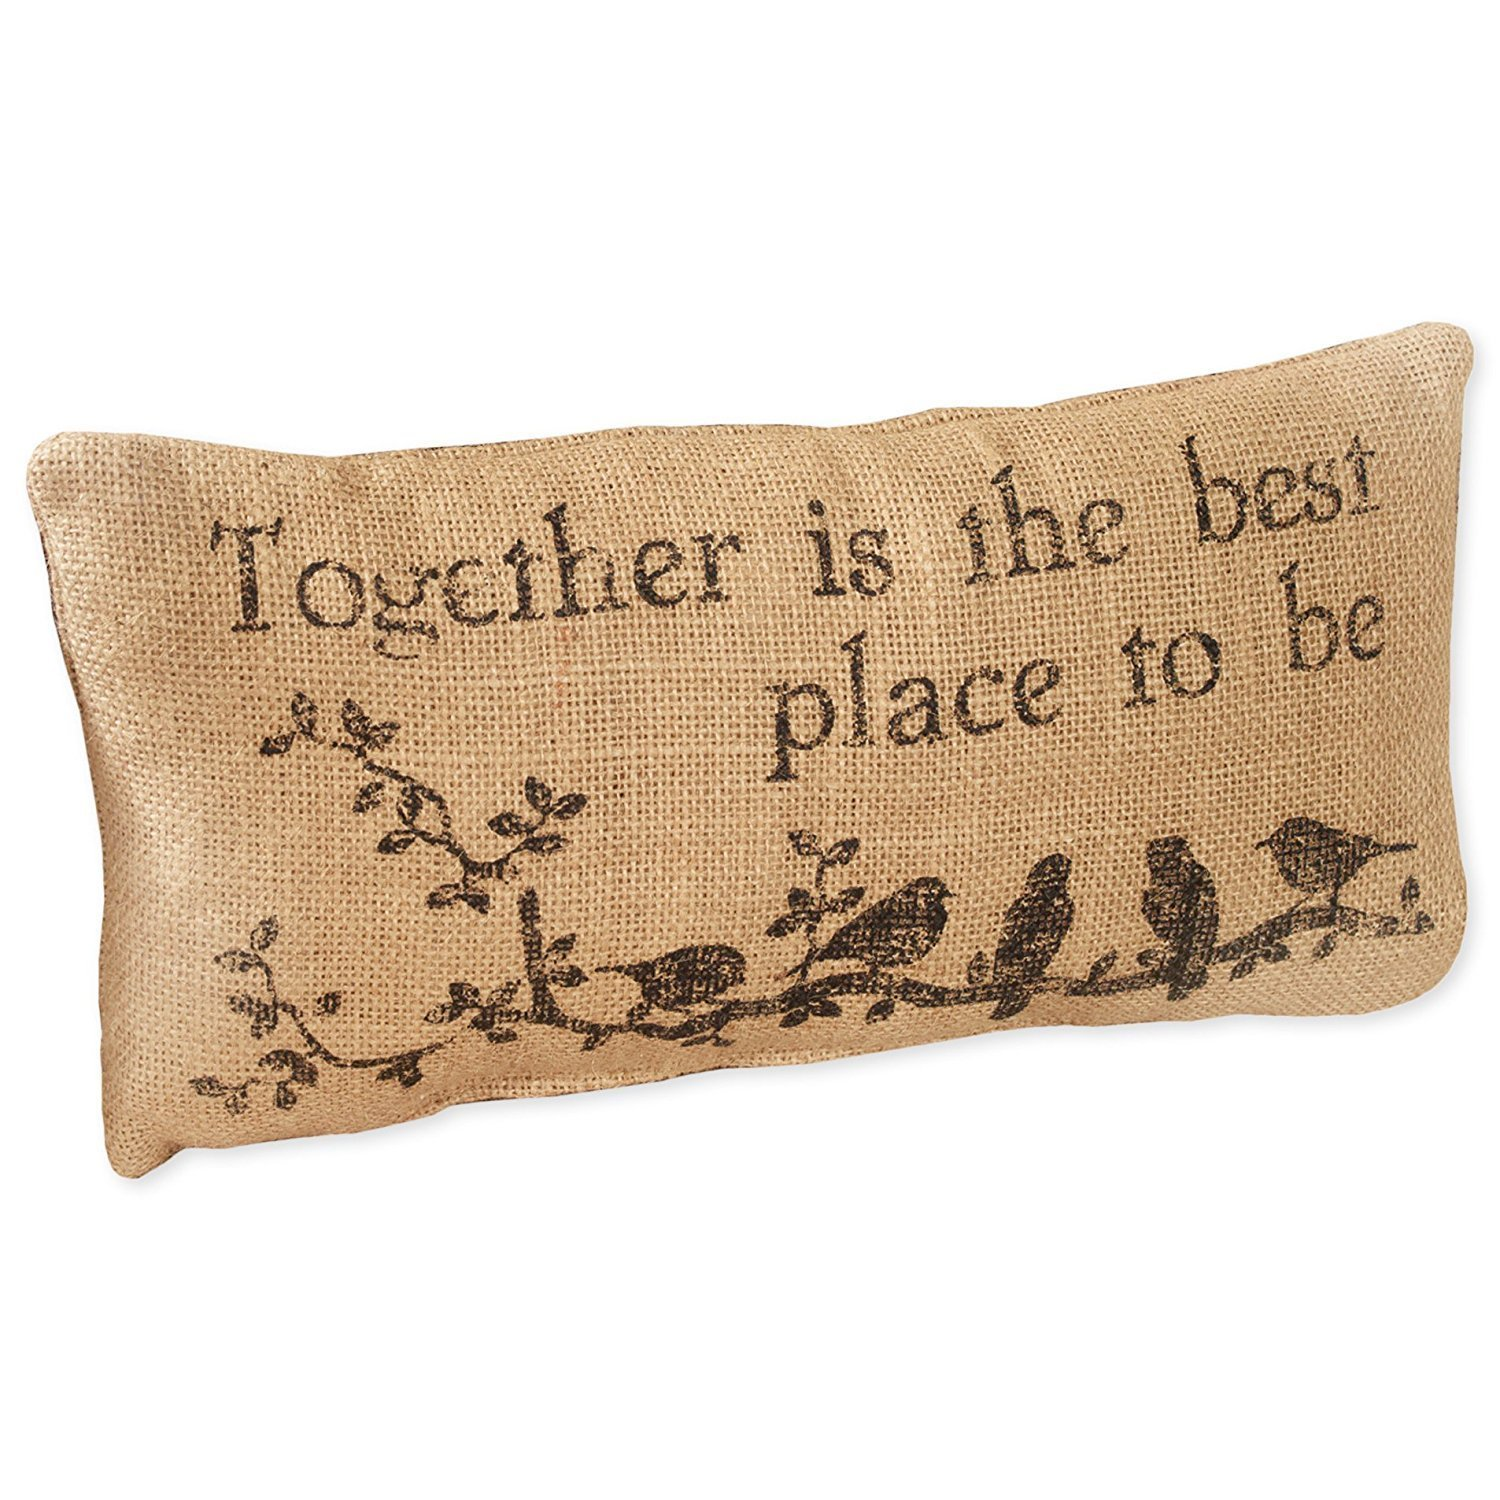 Small Burlap Together Country Pillow The Country House Collection 81622